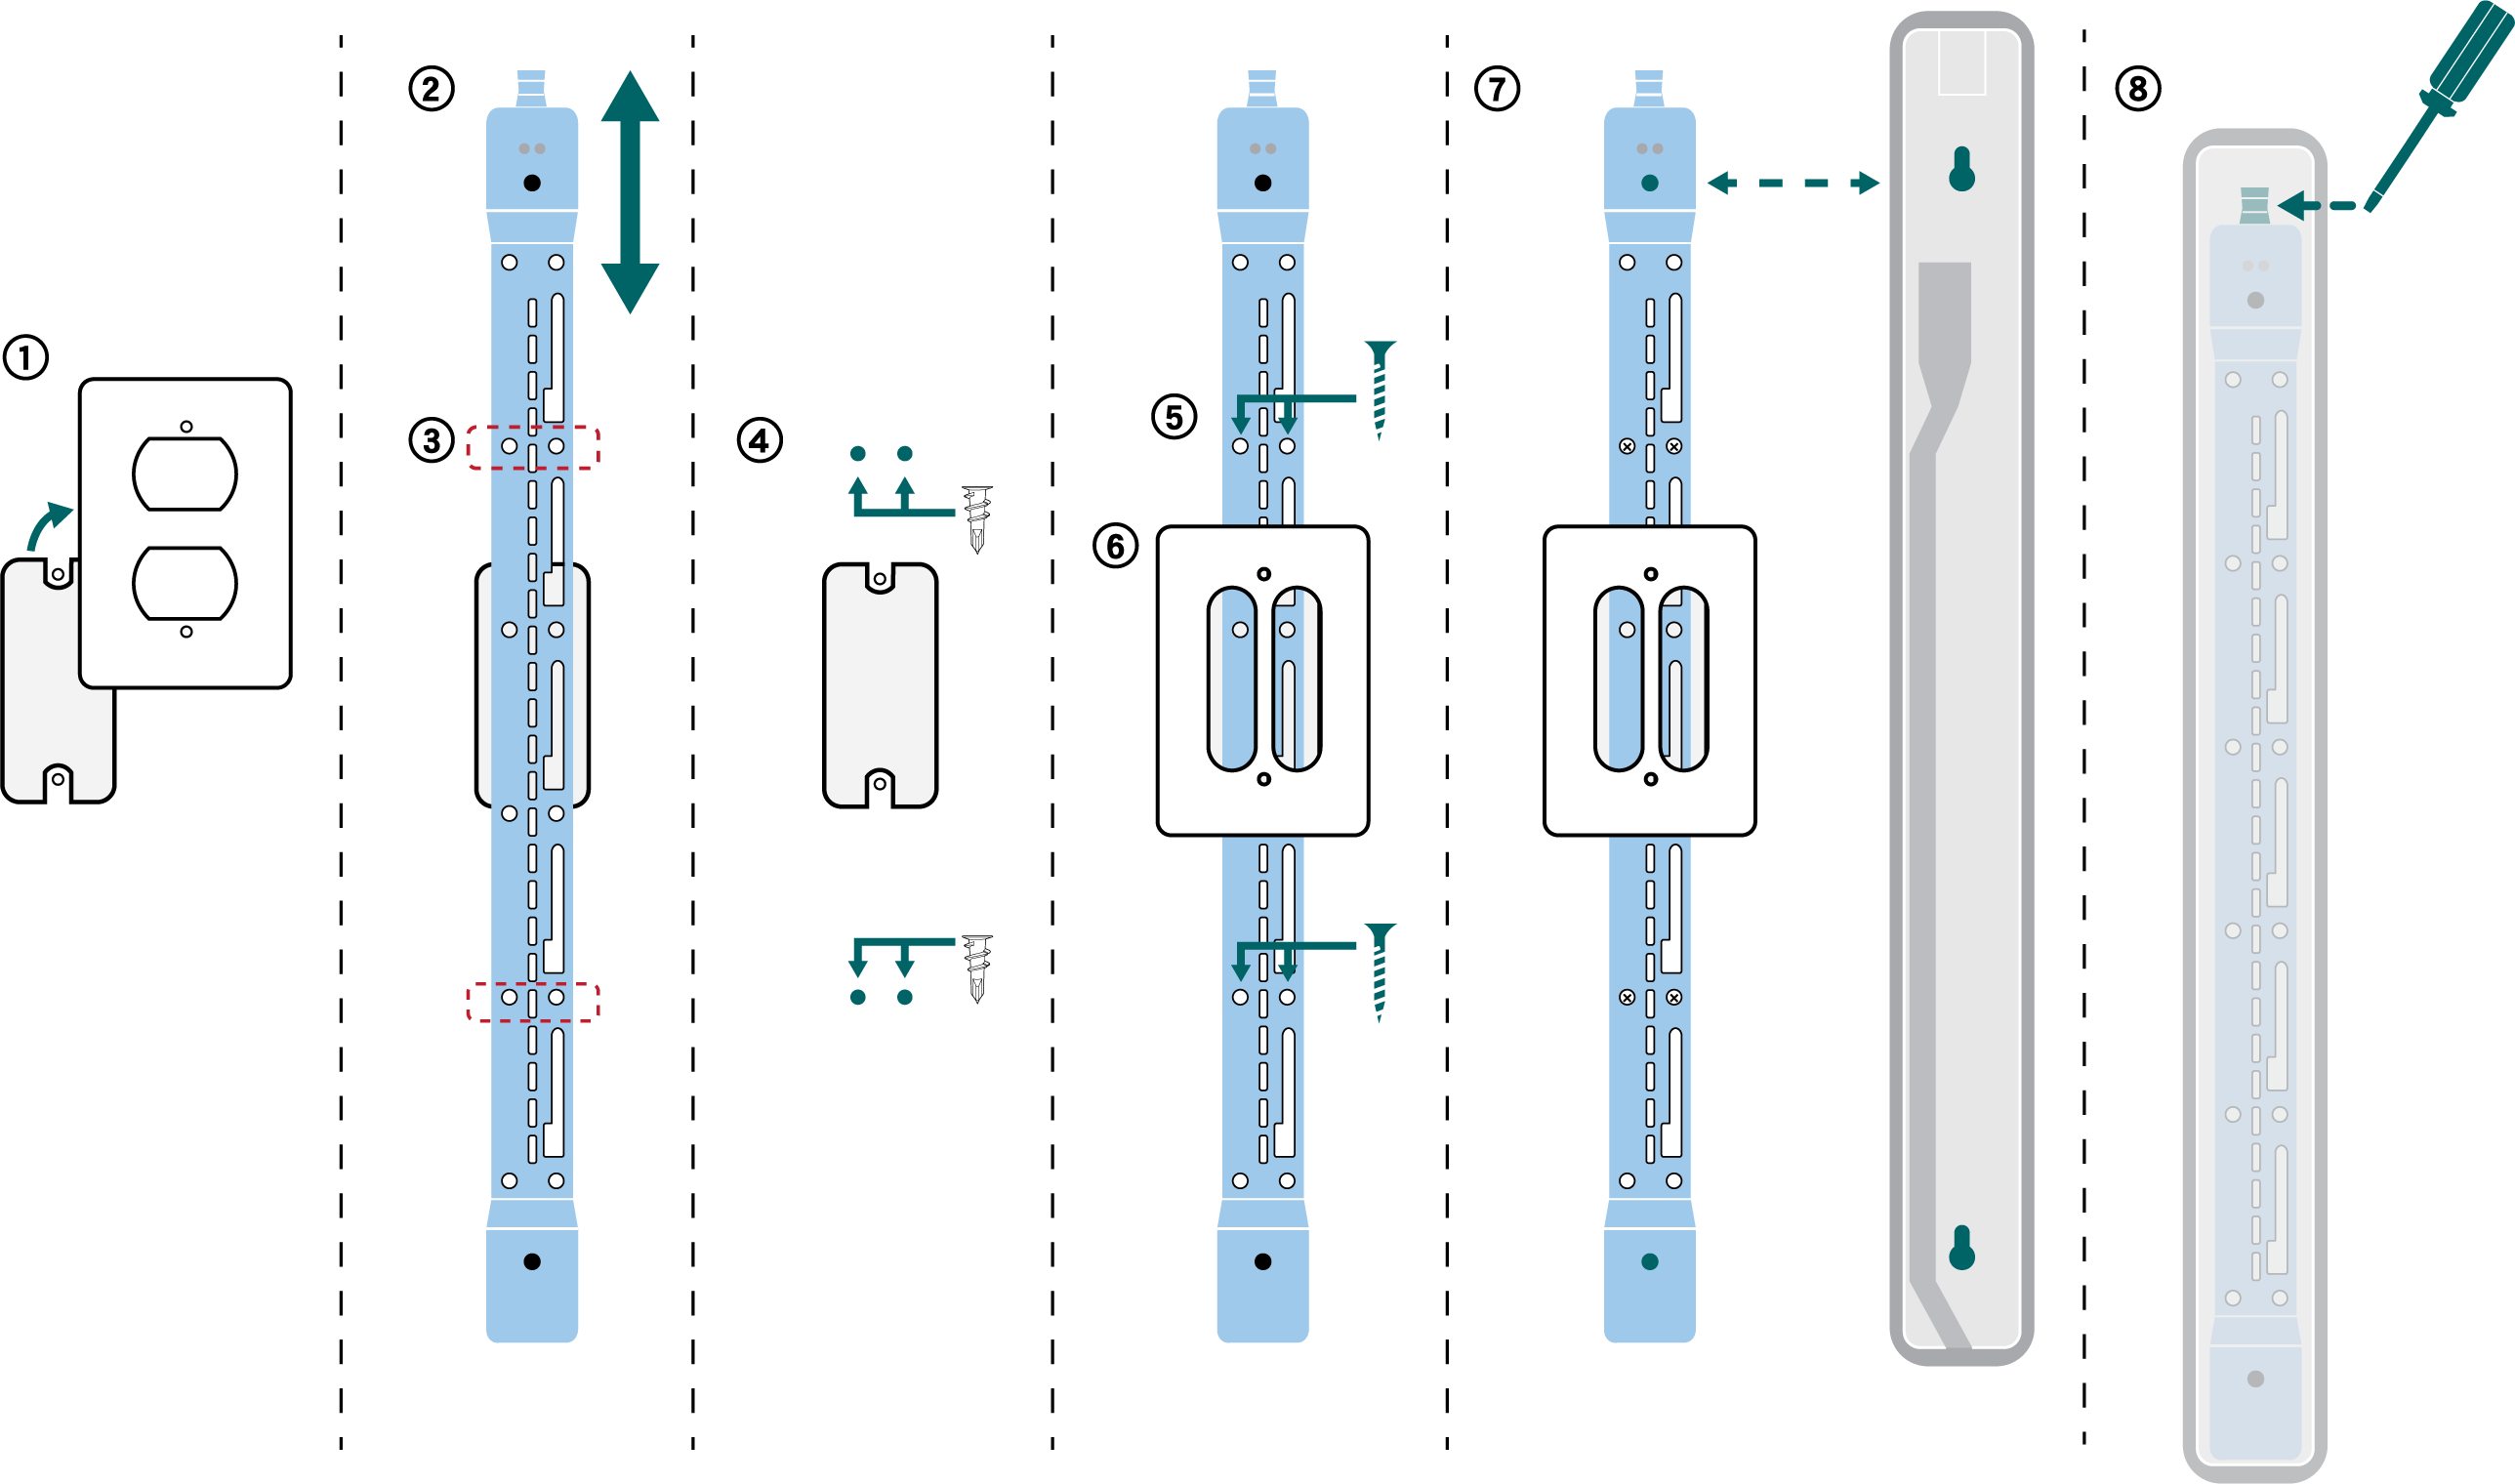 Numbered steps showing how to install the A710-HOUSING in a wall-mounting bracket.